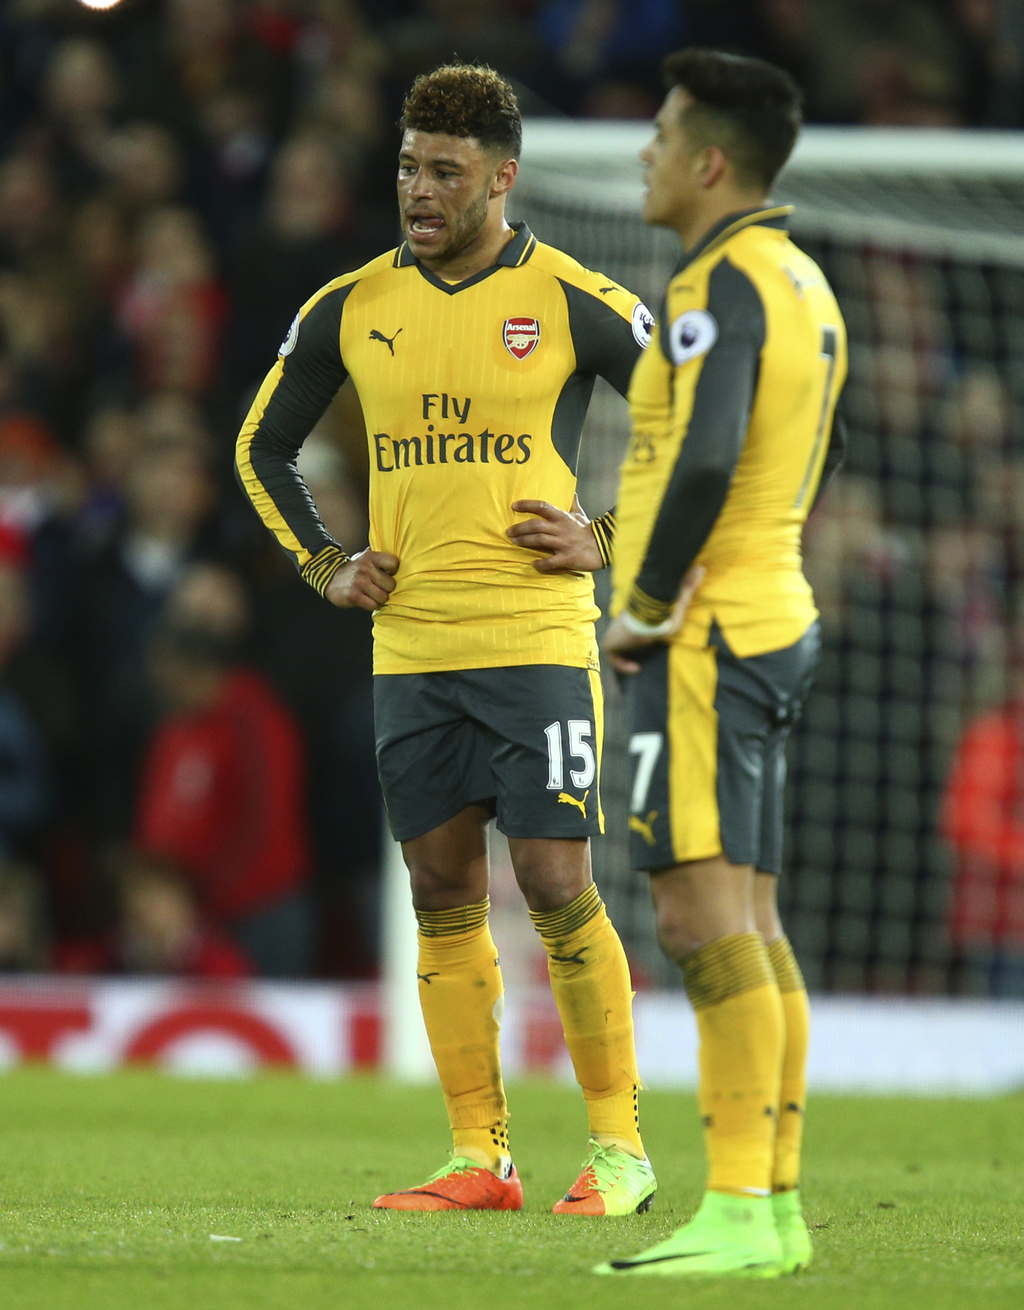 Arsenal's Alex Oxlade-Chamberlain and teammate Arsenal's Alexis Sanchez stand on the pitch after the end of he English Premier League s...